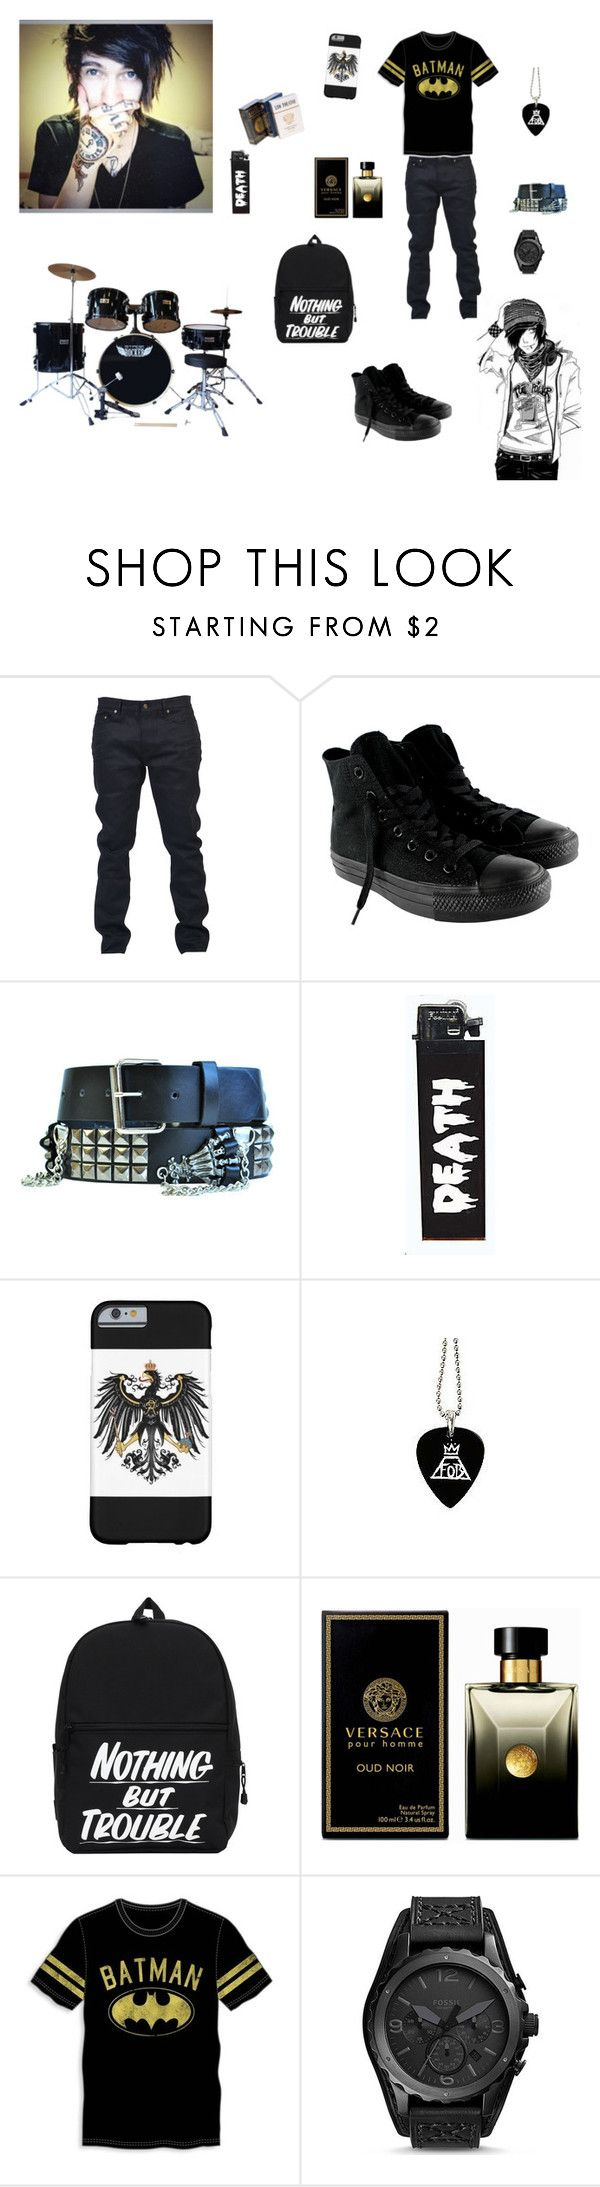 """""""I got to drum today ~Luke"""" by bandssavedmehhh ❤ liked on Polyvore featuring interior, interiors, interior design, thuis, home decor, interior decorating, Yves Saint Laurent, Converse, Versace en Bioworld"""